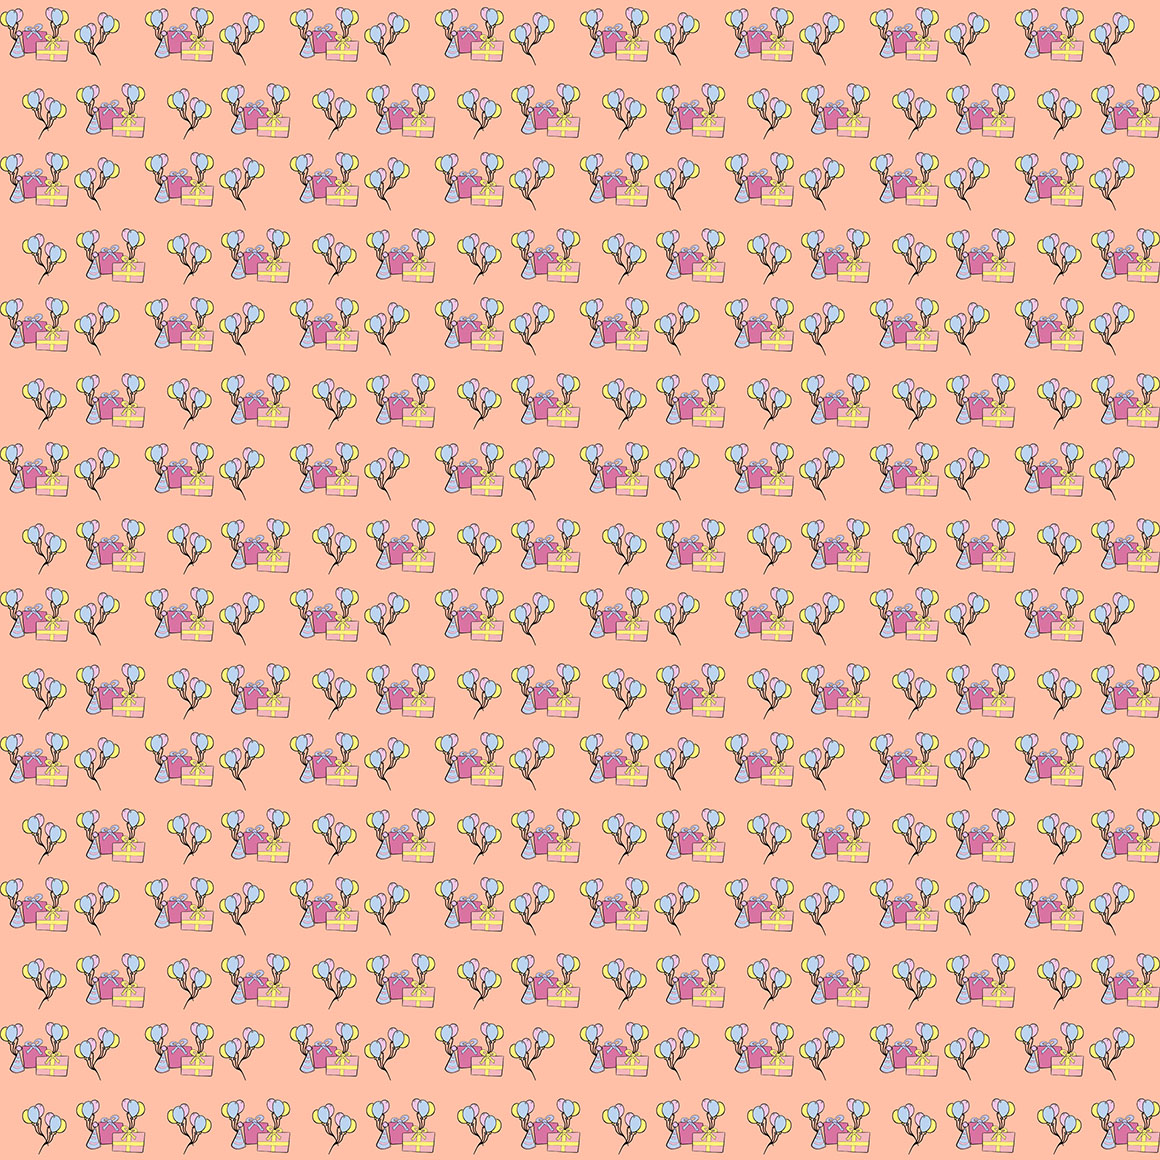 10 Unicorn Themed Seamless Patterns example image 5